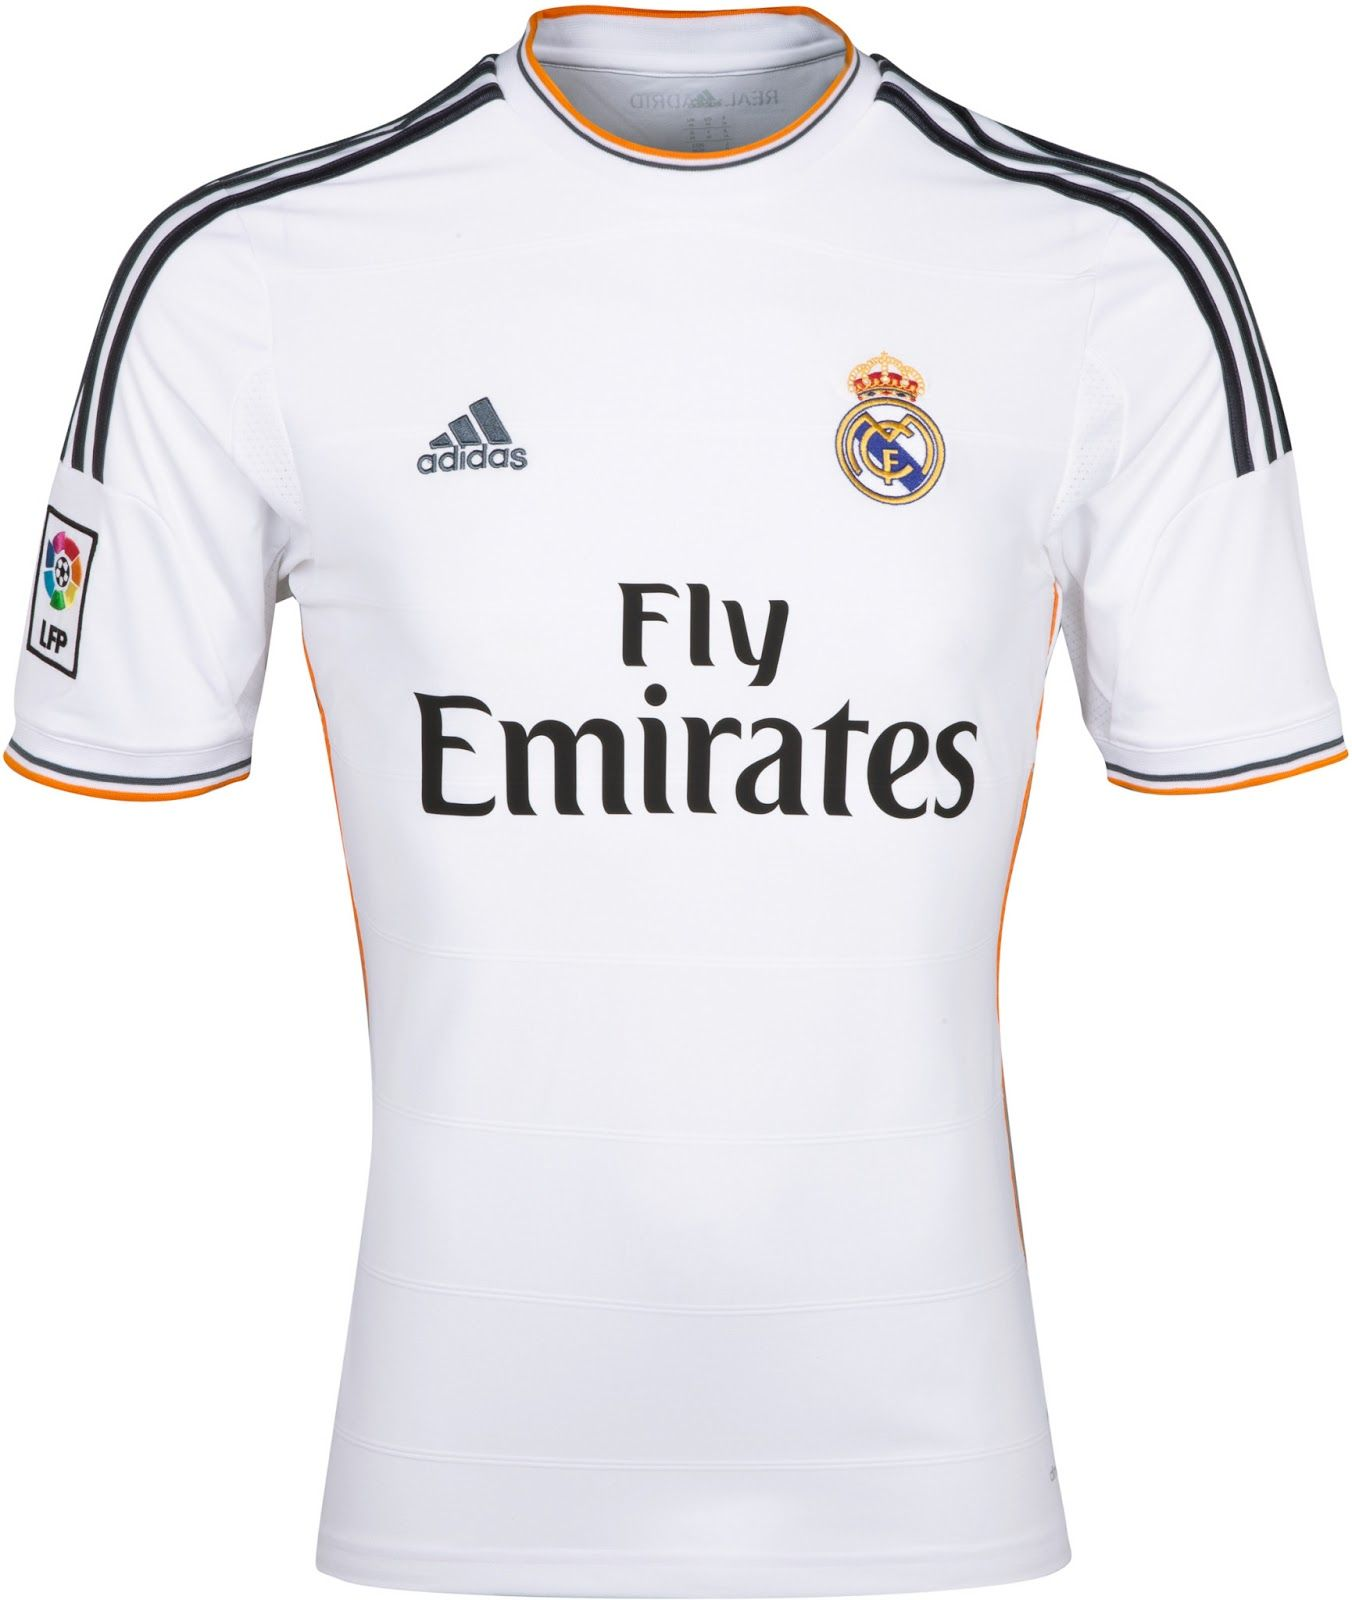 Camiseta Real Madrid  dc42e5e3dc95e